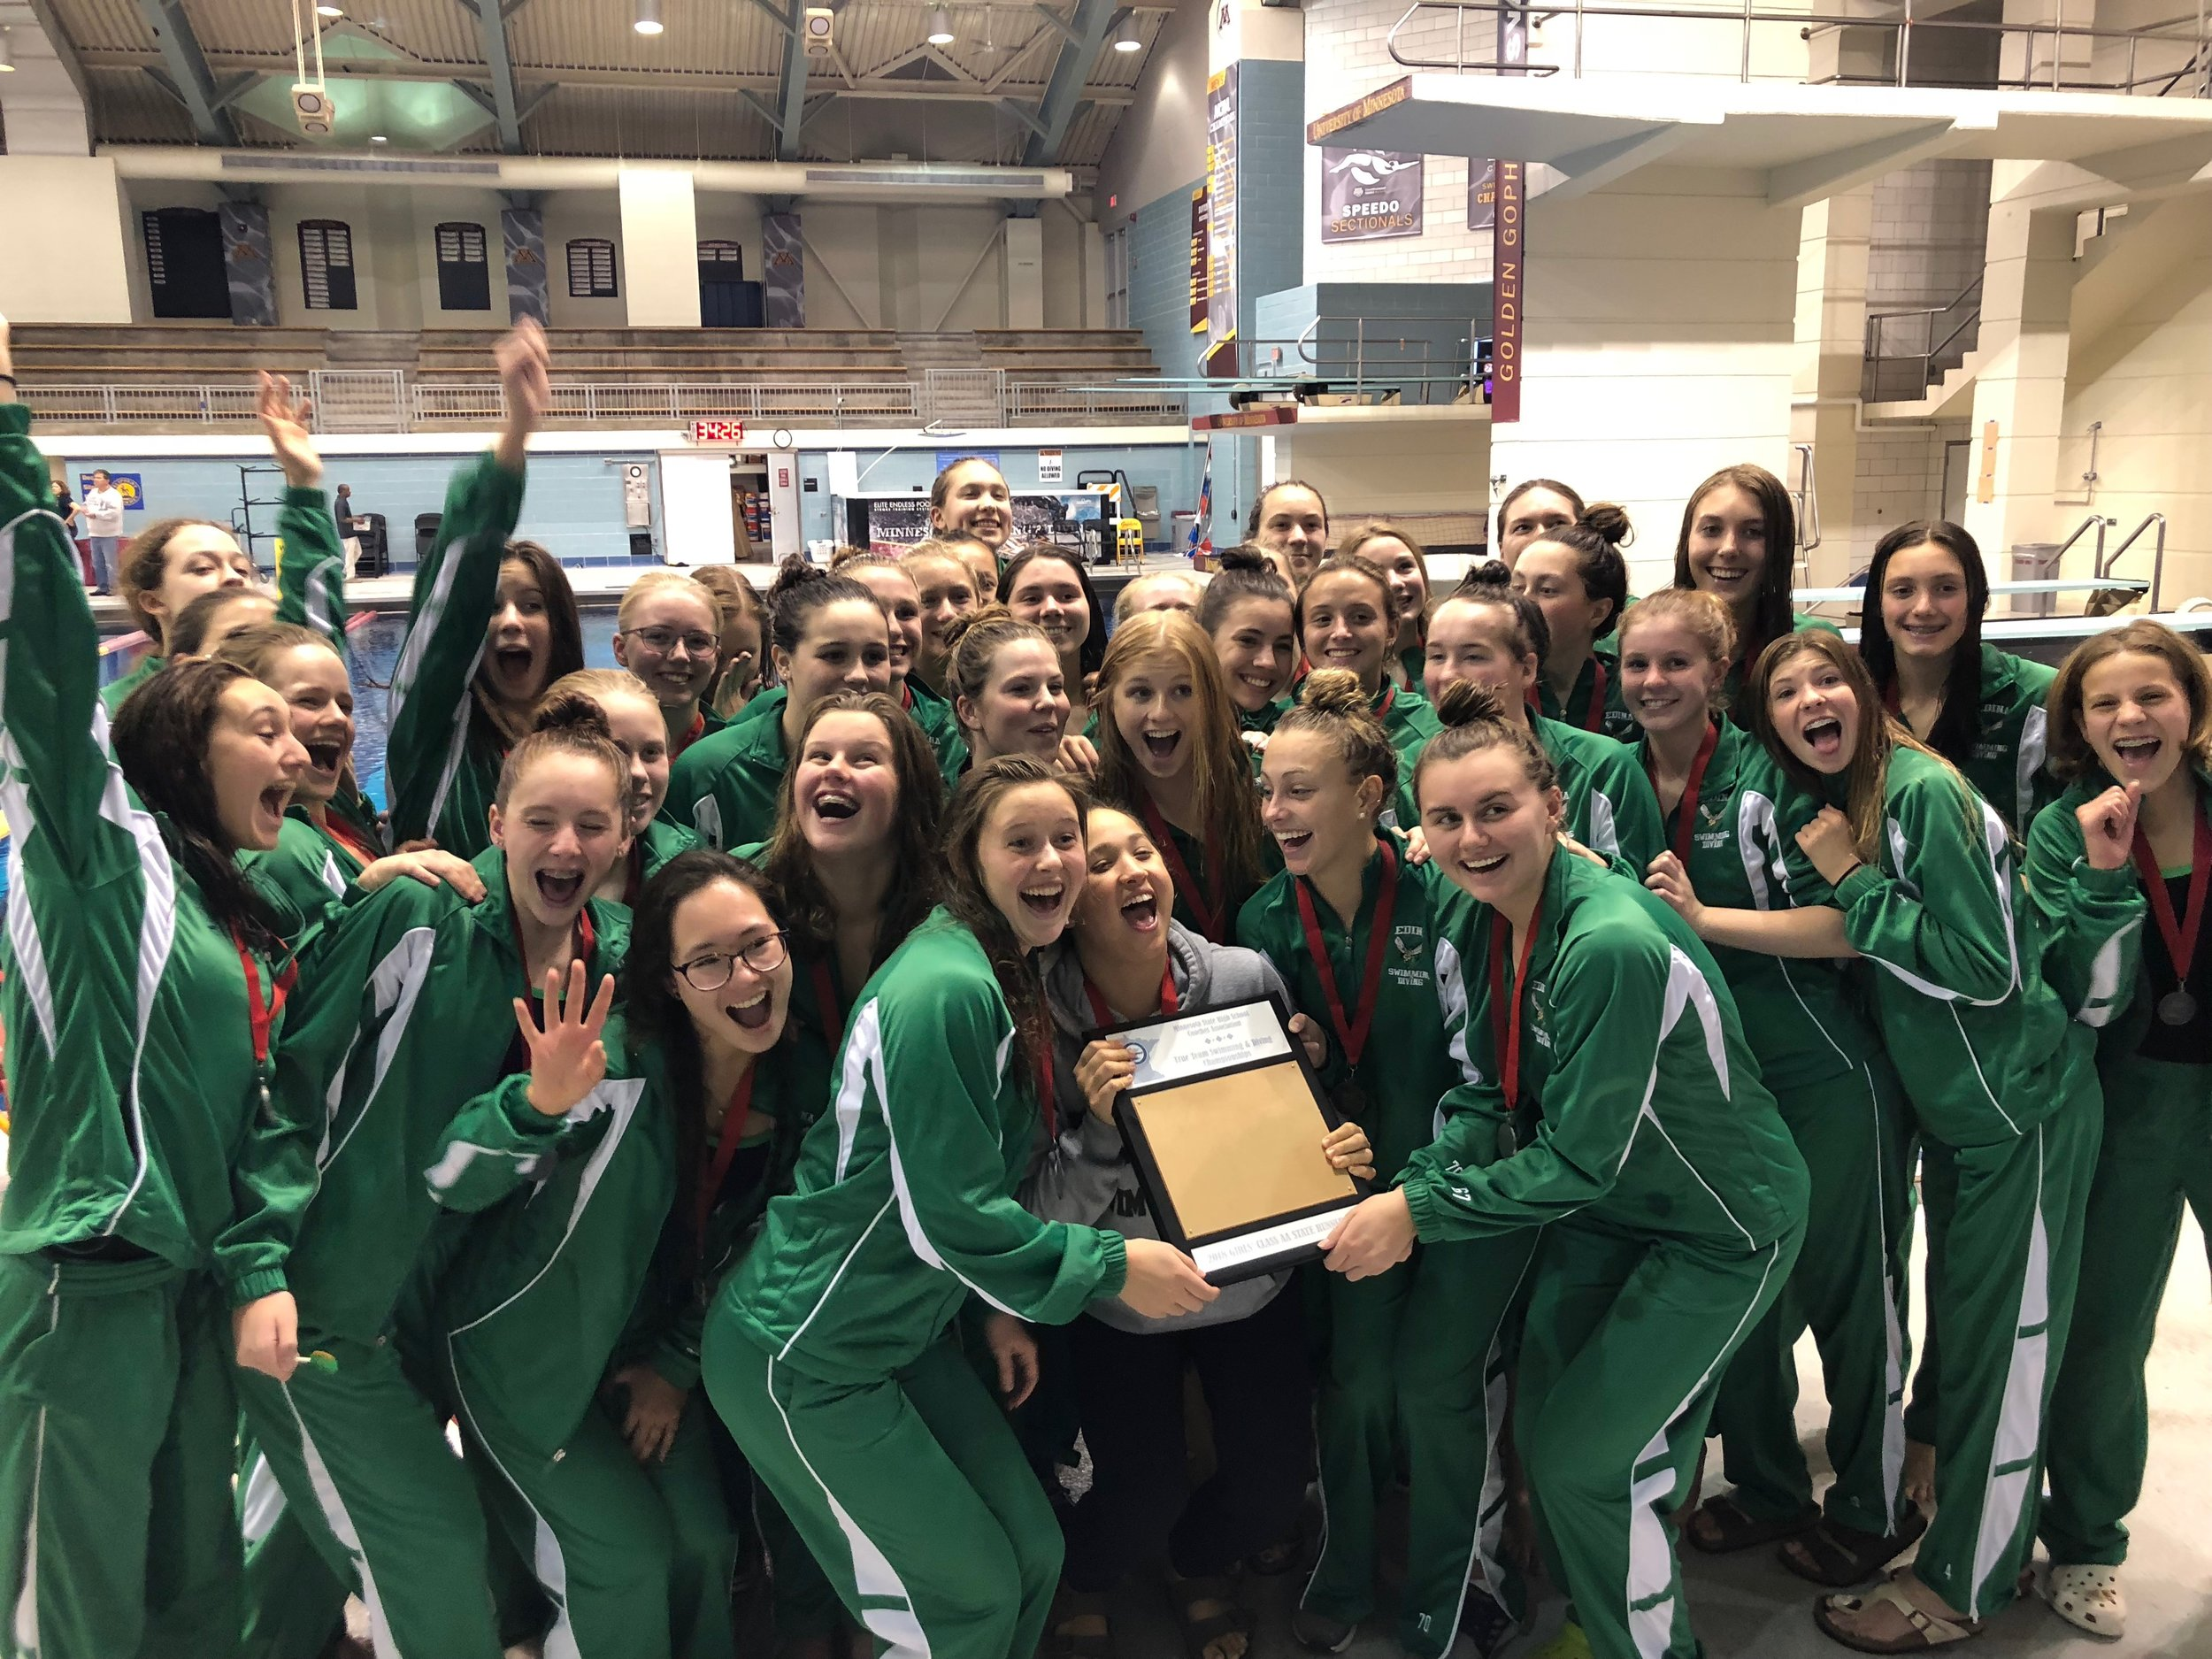 edina, runner up